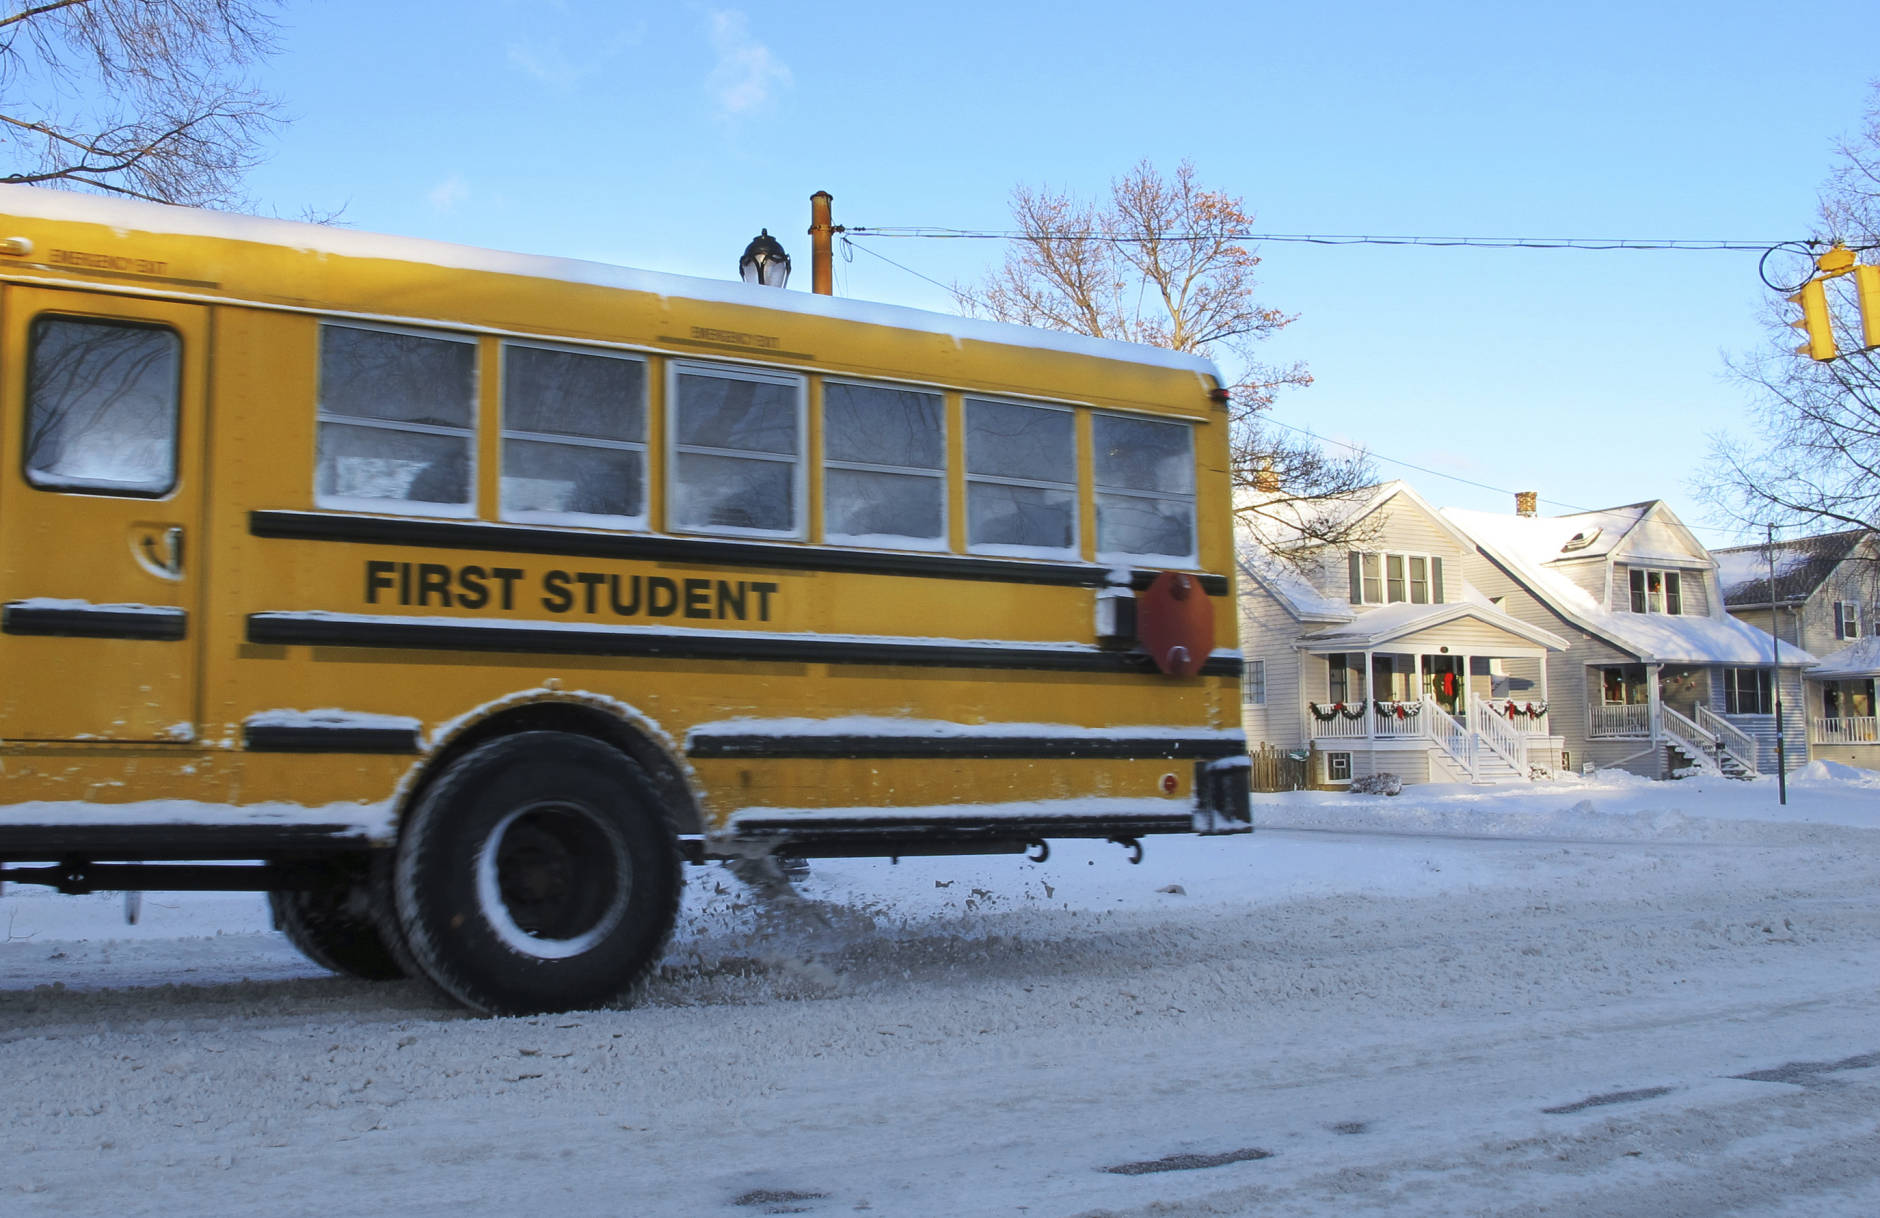 A school bus navigates snow-covered roads on a 10-degree morning in Buffalo, N.Y., Thursday, Dec. 15, 2016. City schools and businesses were open as usual after several inches of wind-driven snow snarled the evening commute. (AP Photo/Carolyn Thompson)